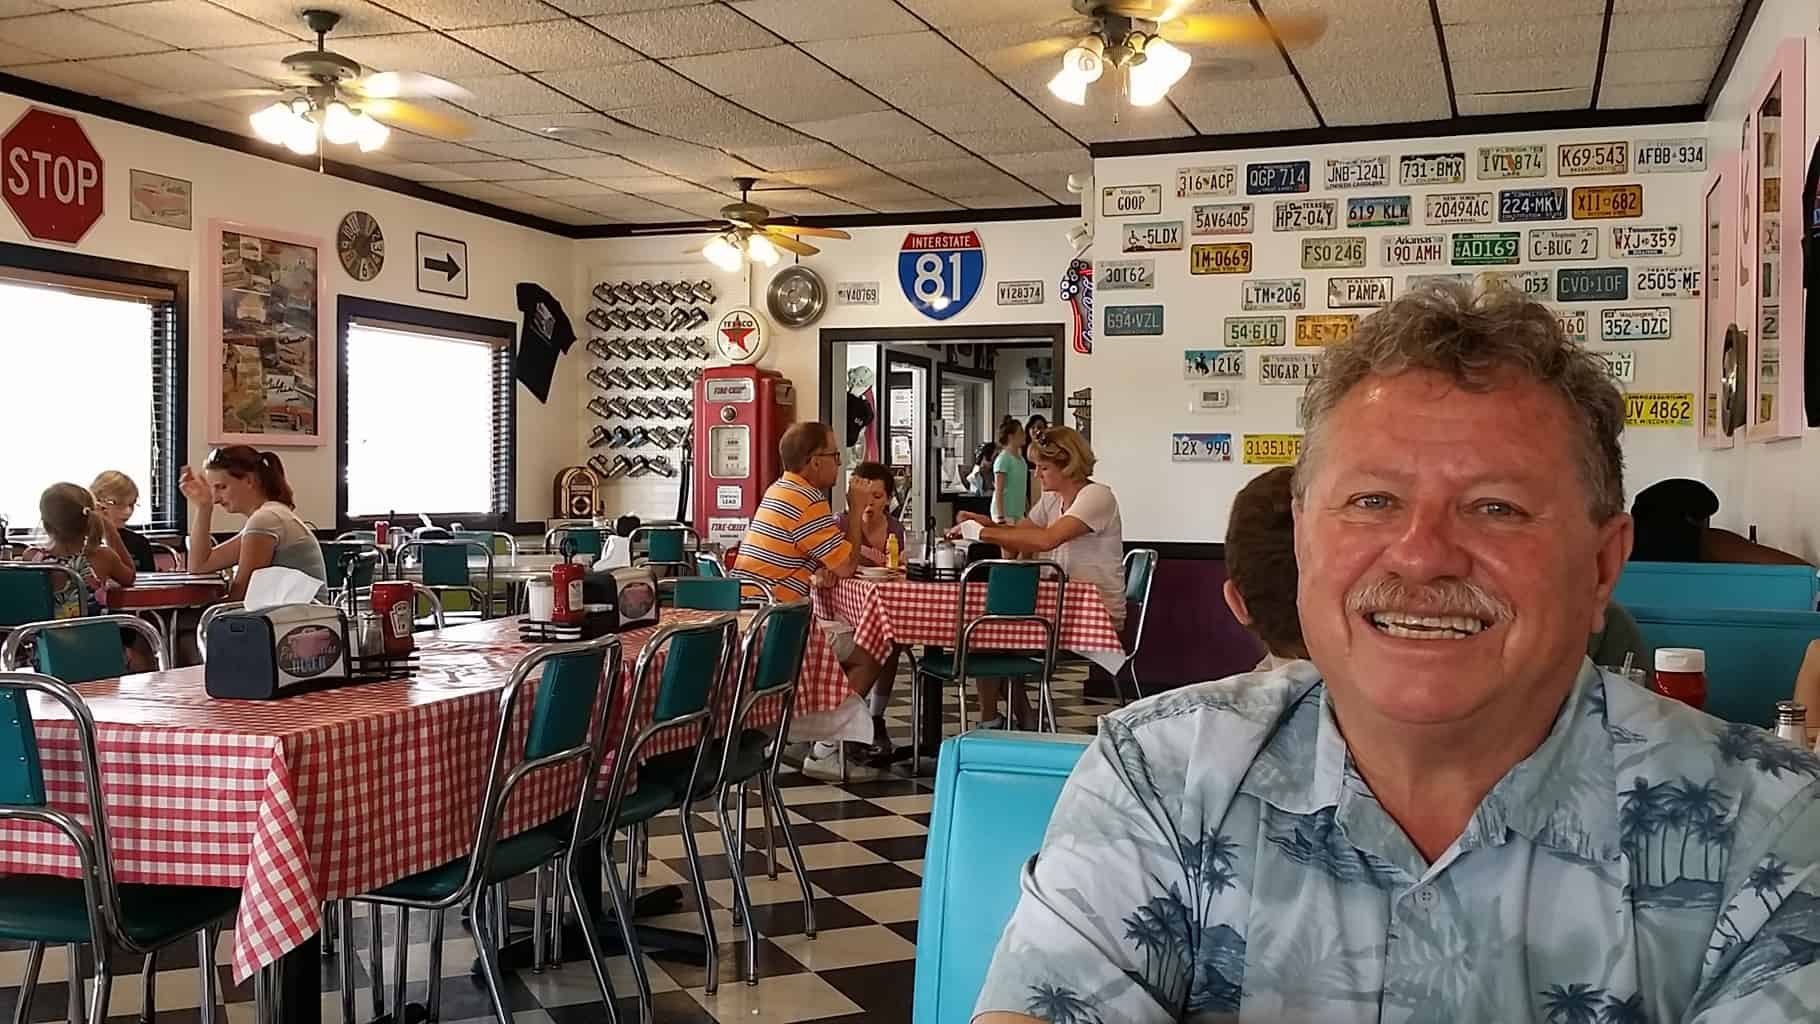 Natural Bridge, Virginia, The Pink Cadillac Restaurant, 1950's Classic diner with Elvis Presley motif. DiscoverCreateInspire.com Great for Family Trip